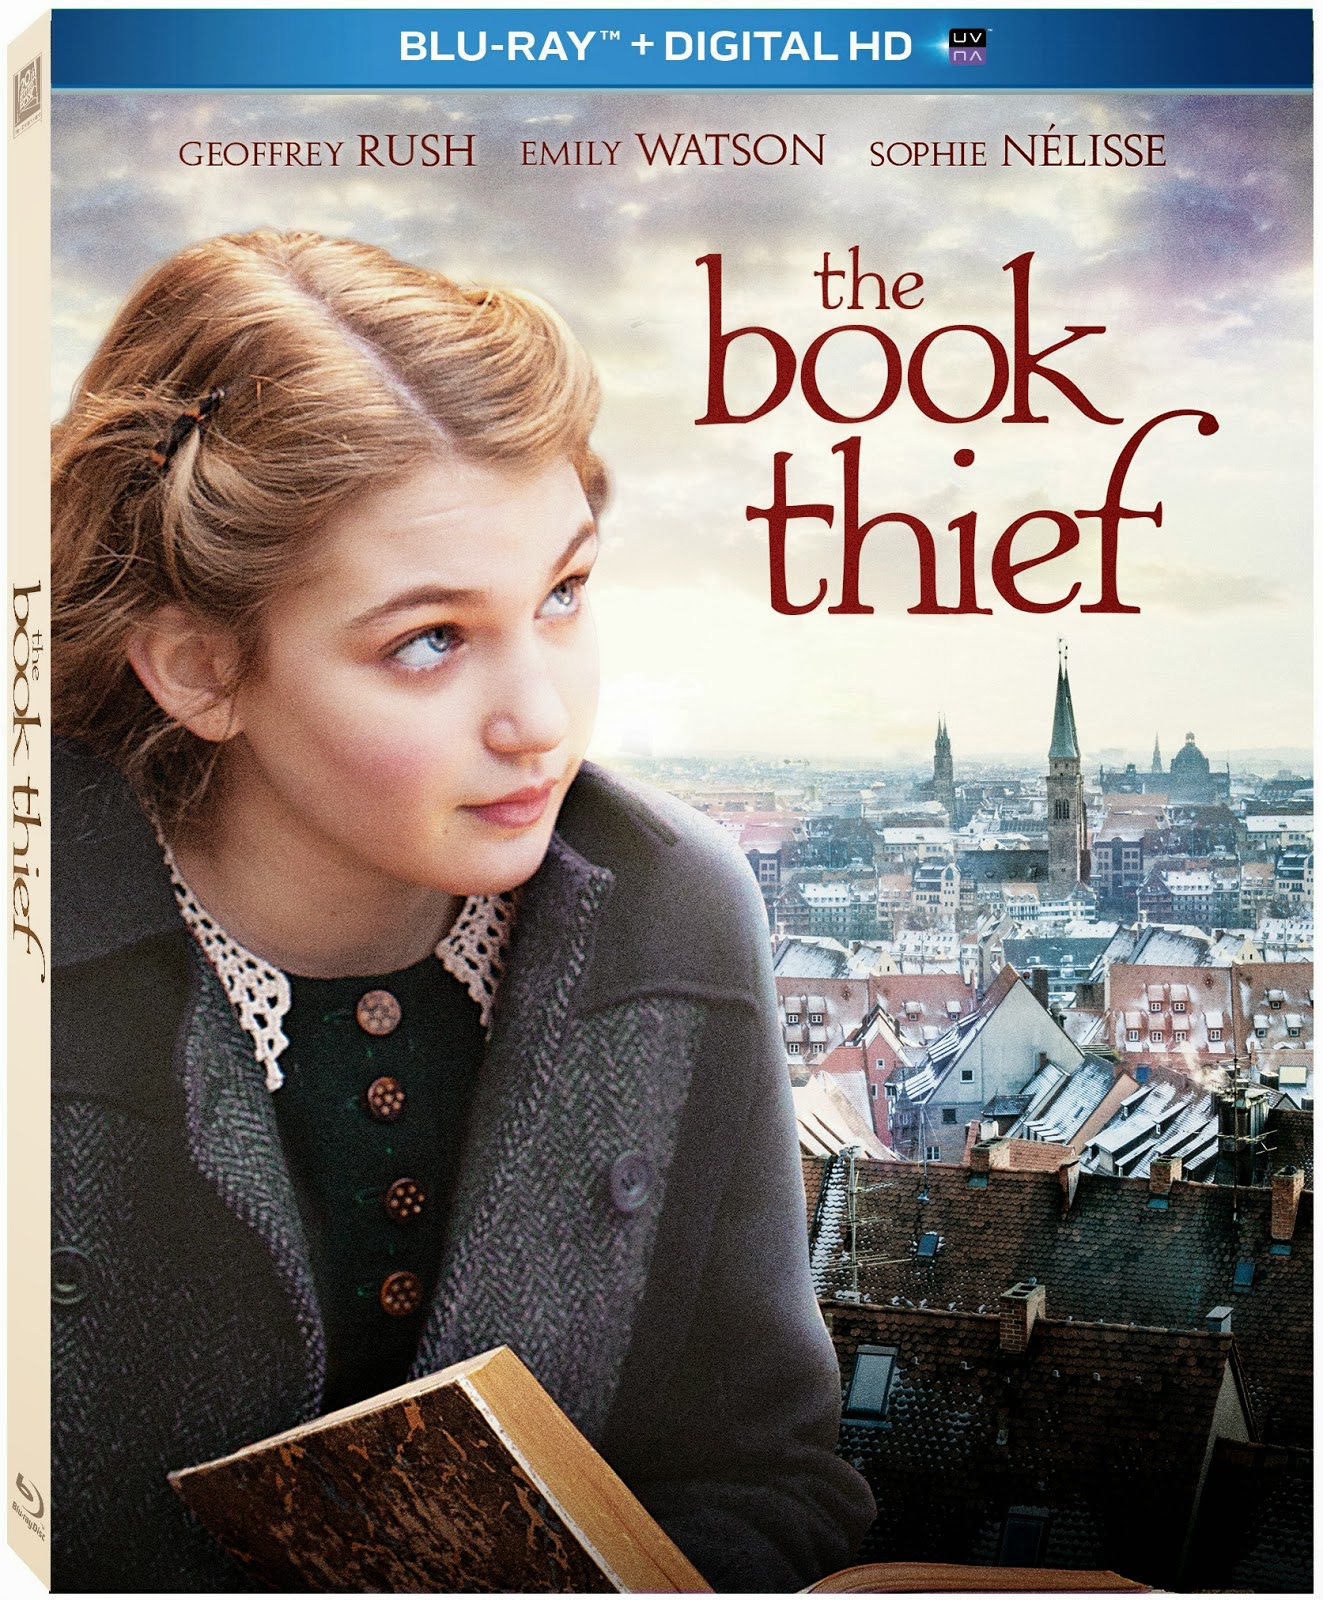 beth fish reads movie review giveaway the book thief book thief on bluray